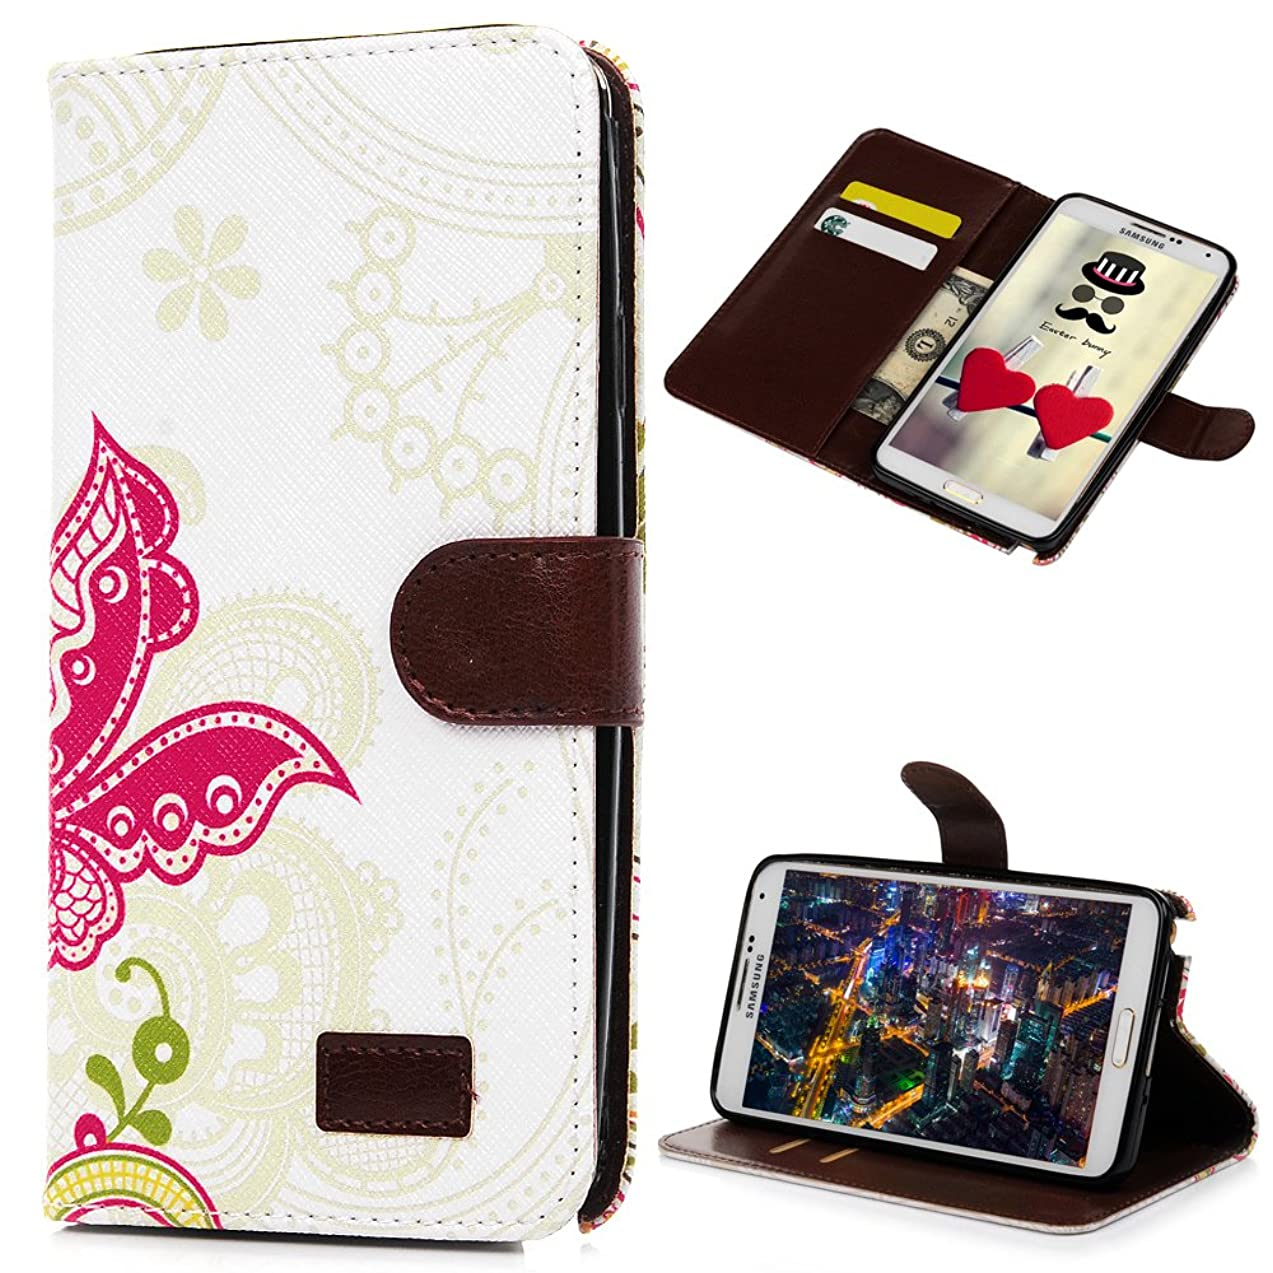 Note 3 Case, Galaxy Note 3 Case - Mavis's Diary Wallet Type Fashion Style Flower PU Leather Series Magnet Design Cover with Kickstand Card Holders for Samsung Galaxy Note 3 SM-N9000 - Butterfly tomqsmcv239